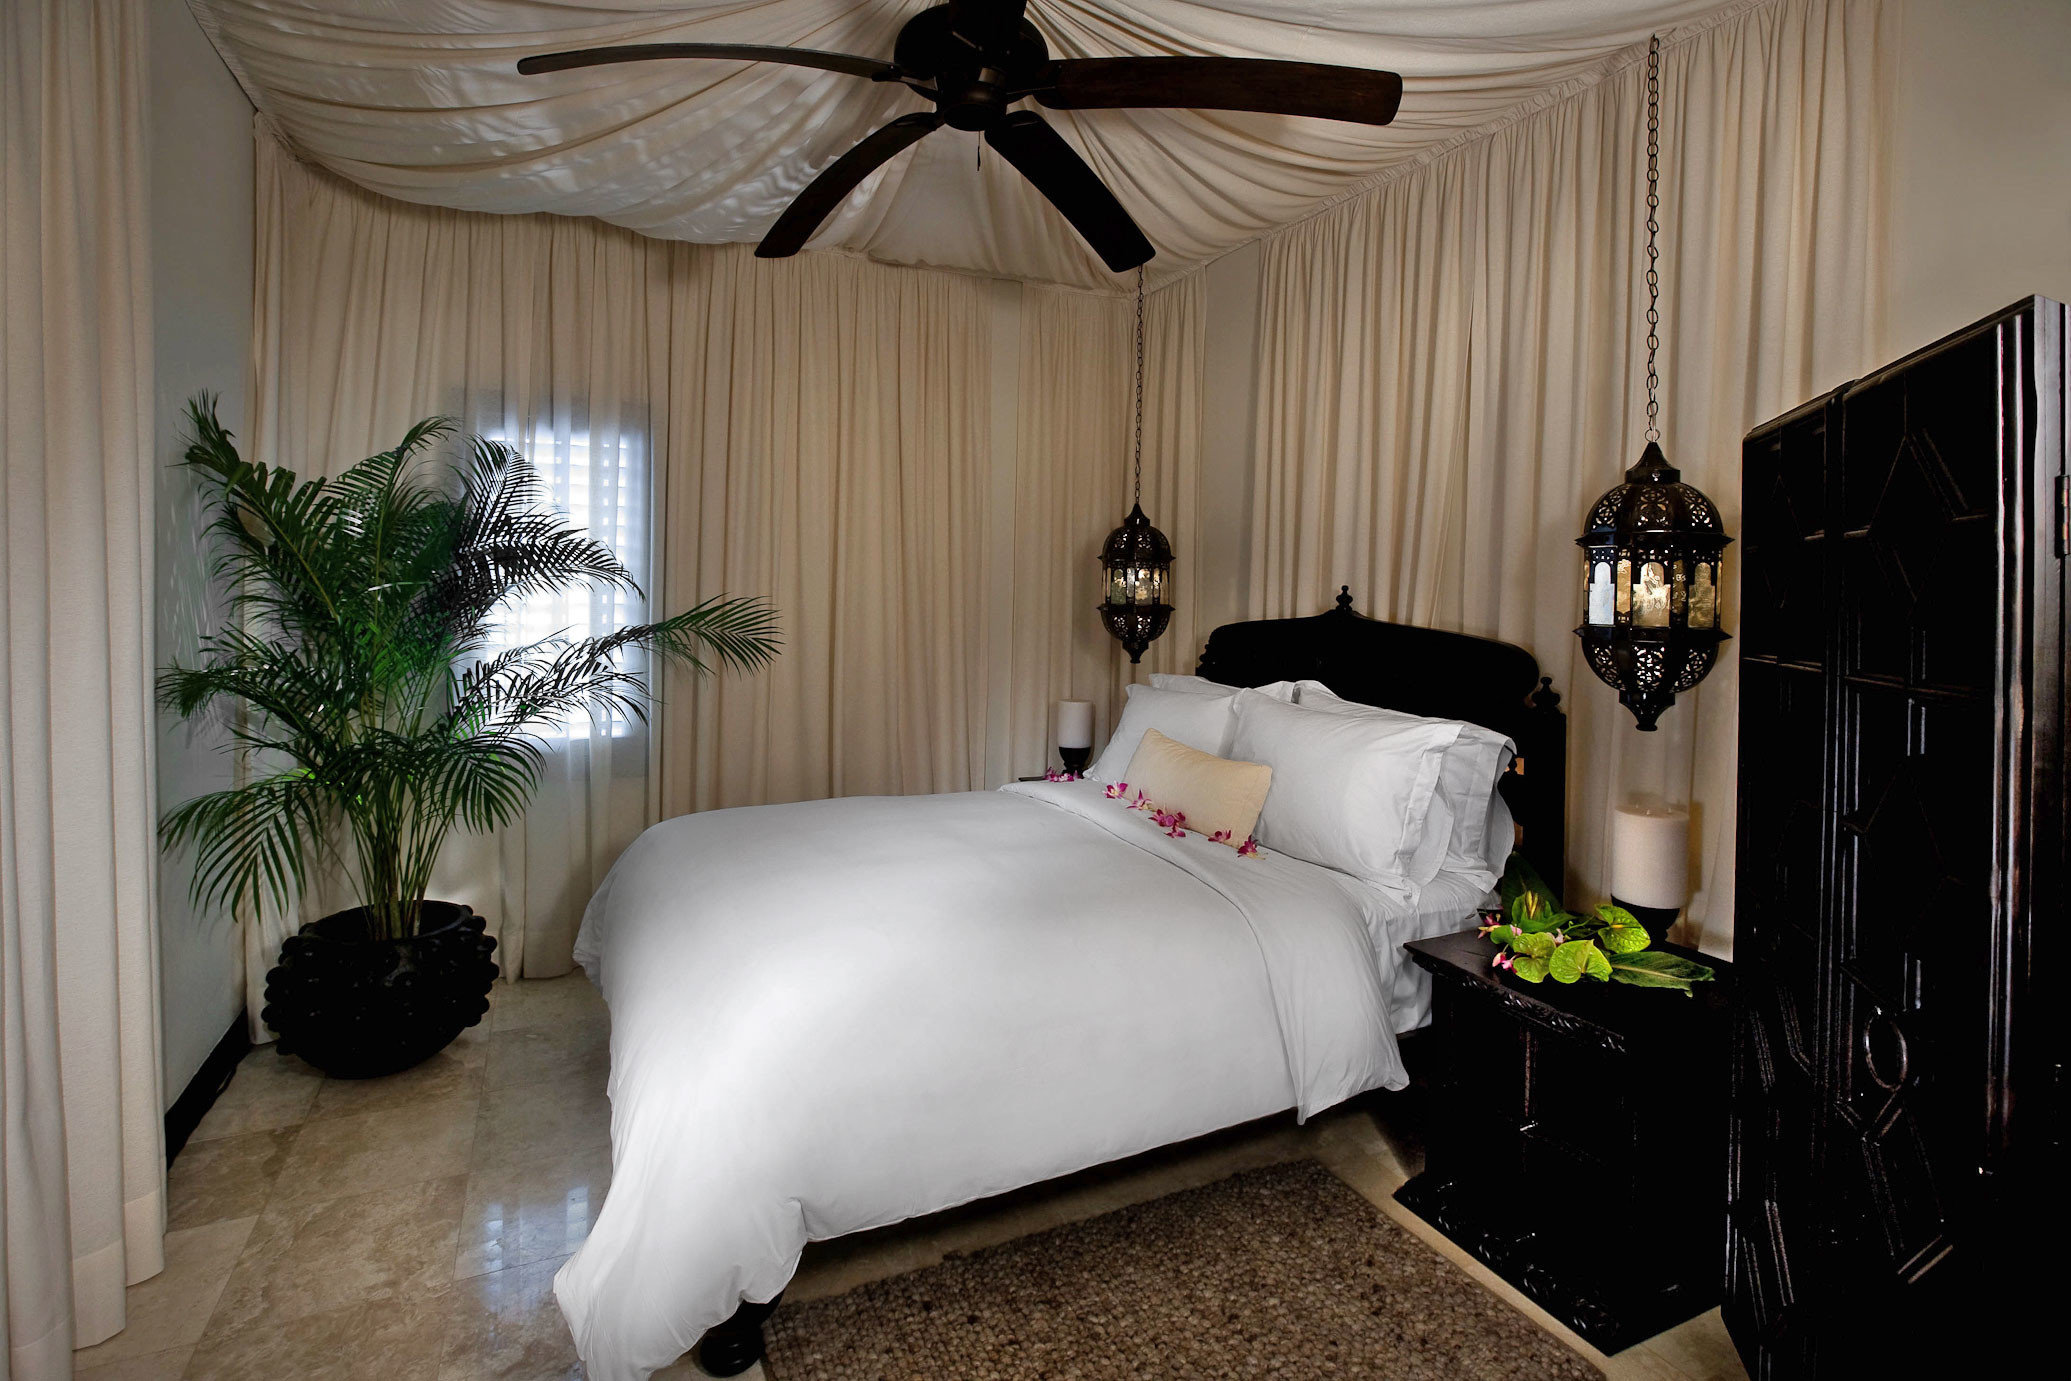 Bedroom Budget Hotels Luxury Suite property house home living room cottage